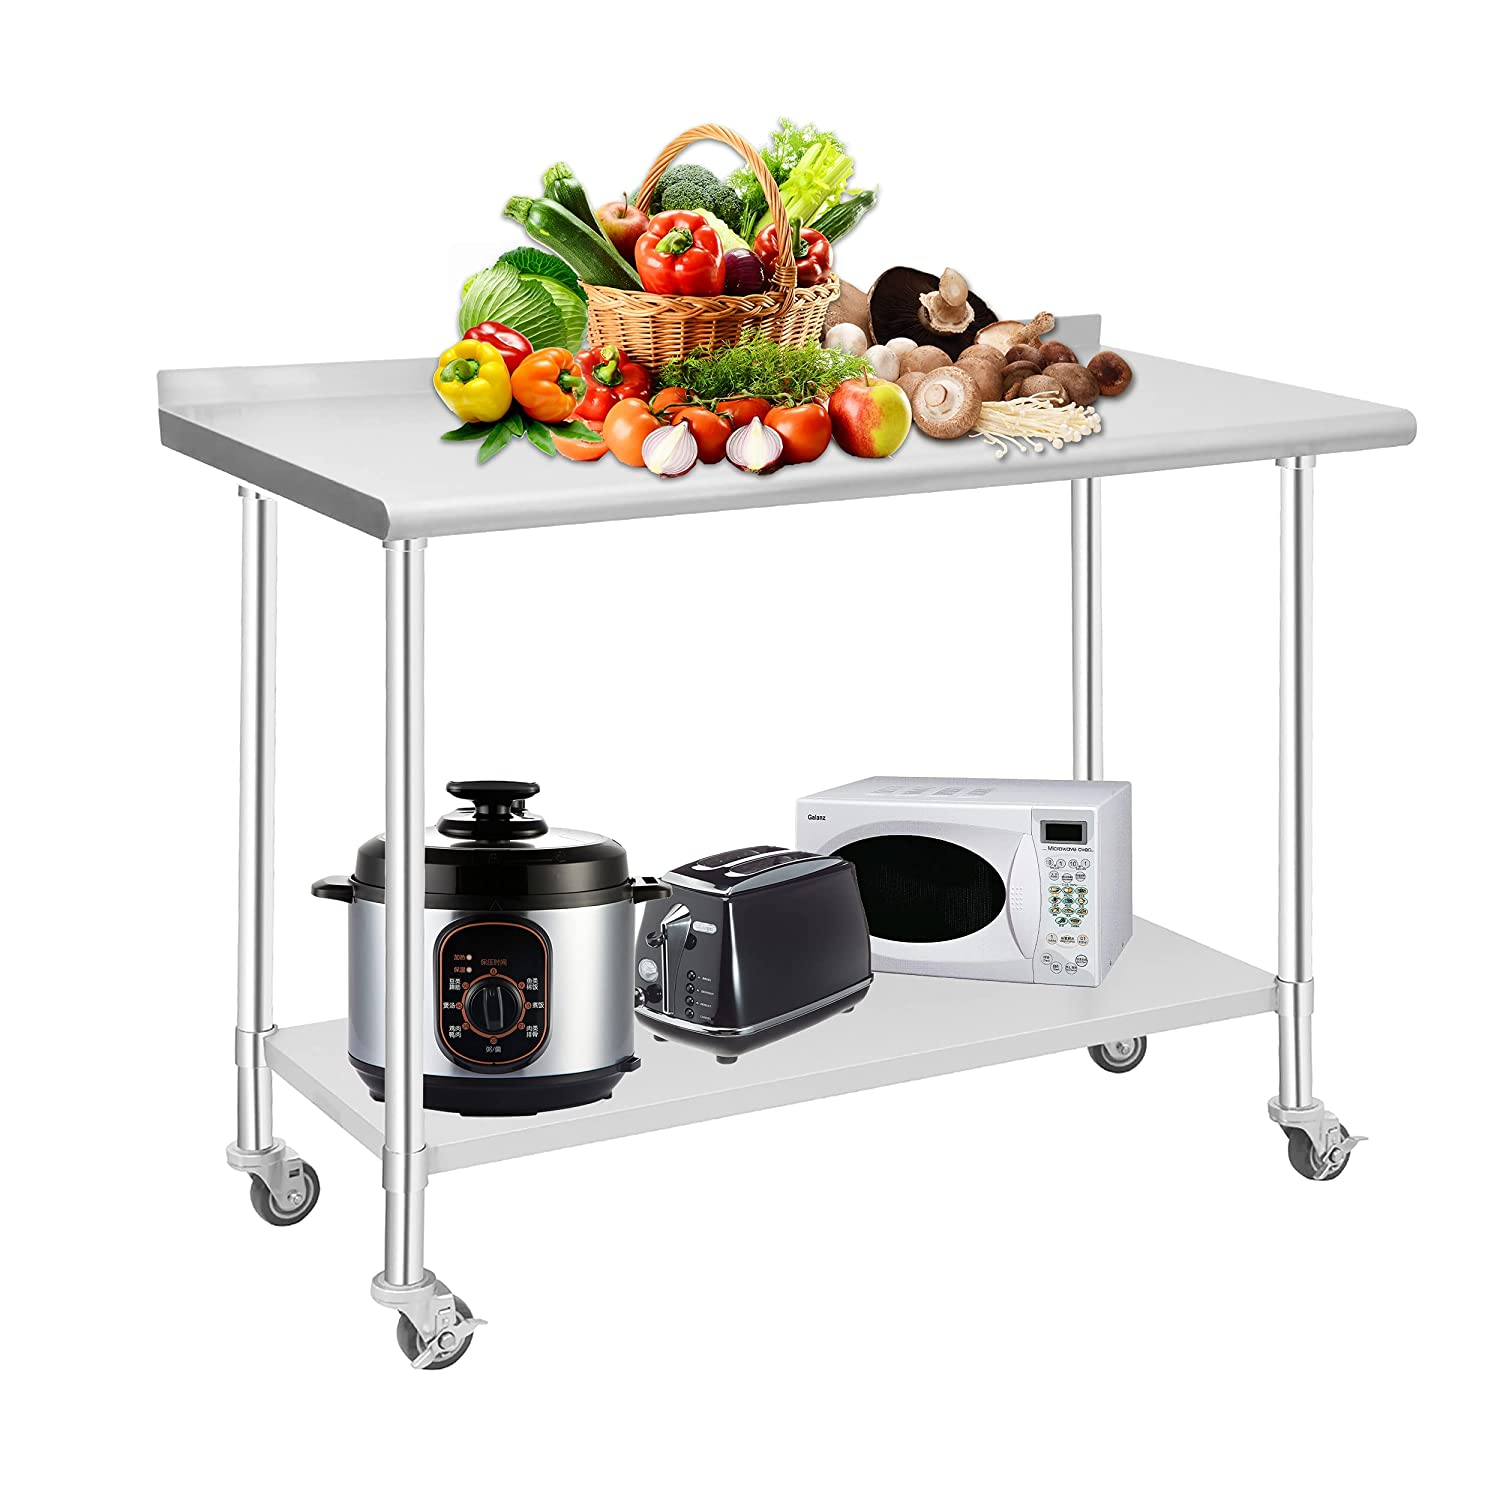 HOCCOT Stainless Steel Prep & Work Table with Adjustable Shelf, with Backsplash and Wheels, Kitchen Island, Commercial Workstations, Utility Table in Kitchen Garage Laundry Room Outdoor BBQ, 24